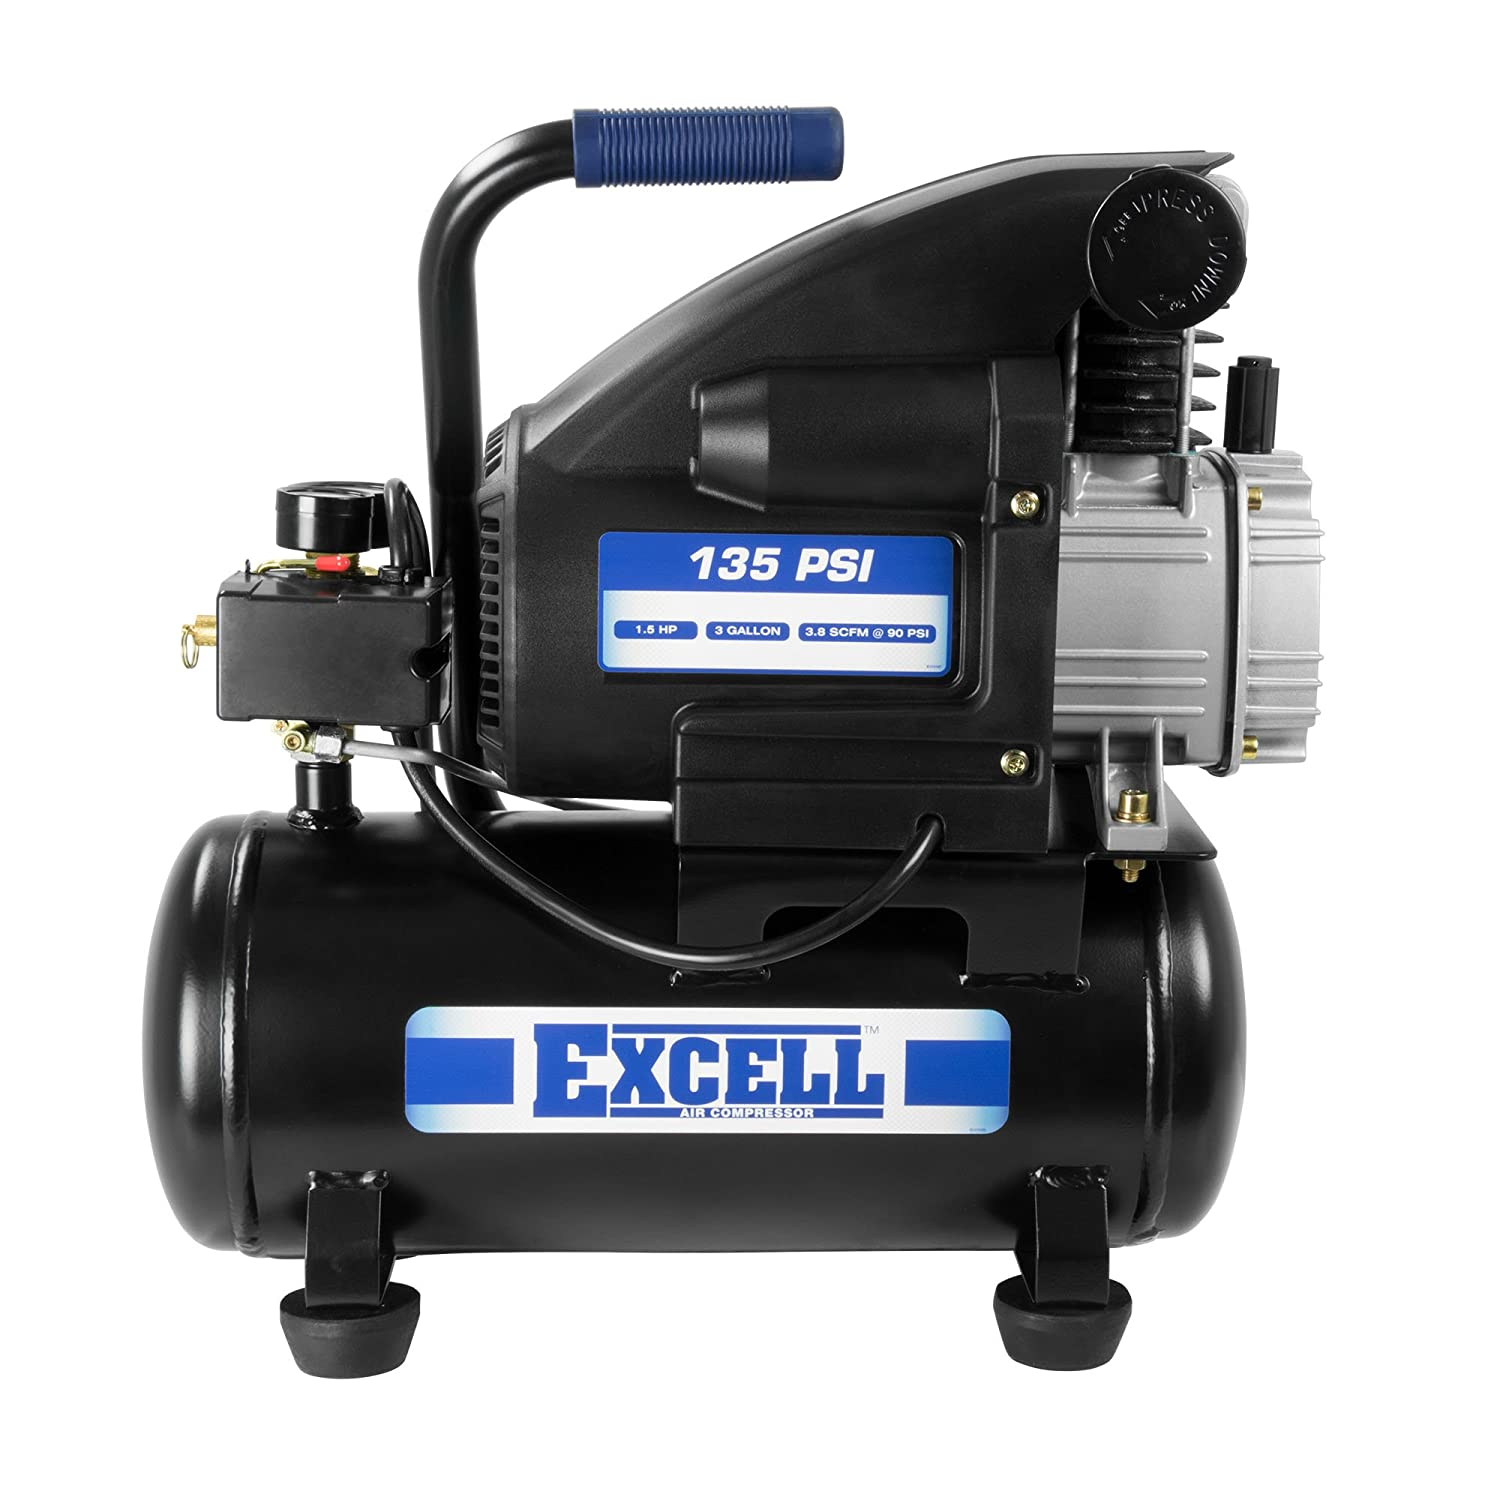 Excell L23HPE Excel Air Compressor EXCELL Air Compressors